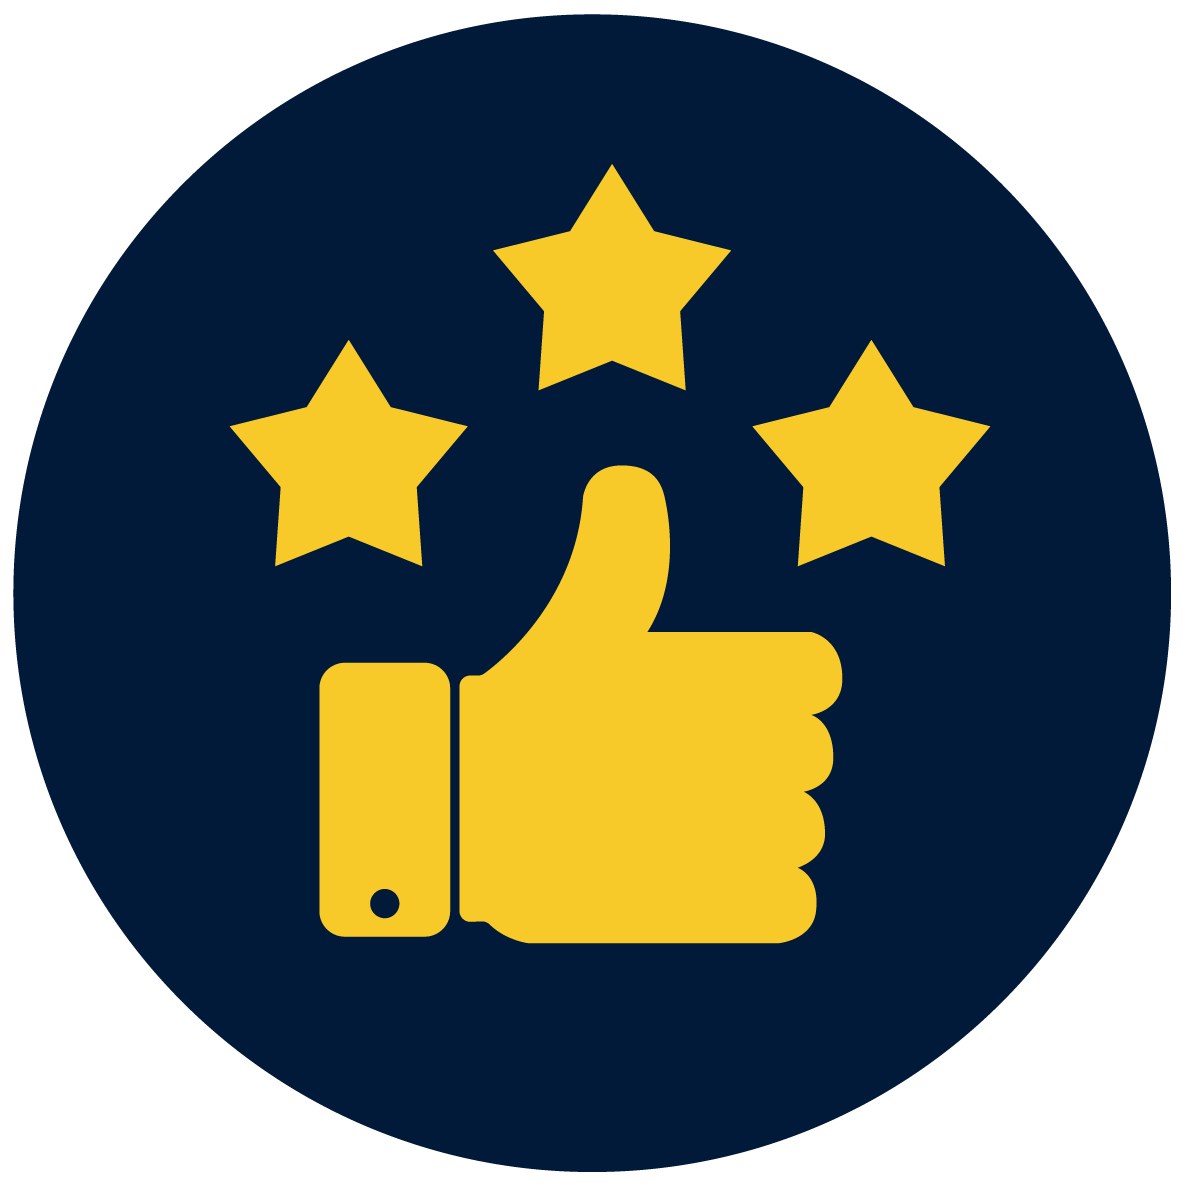 thumbs up with starts icon